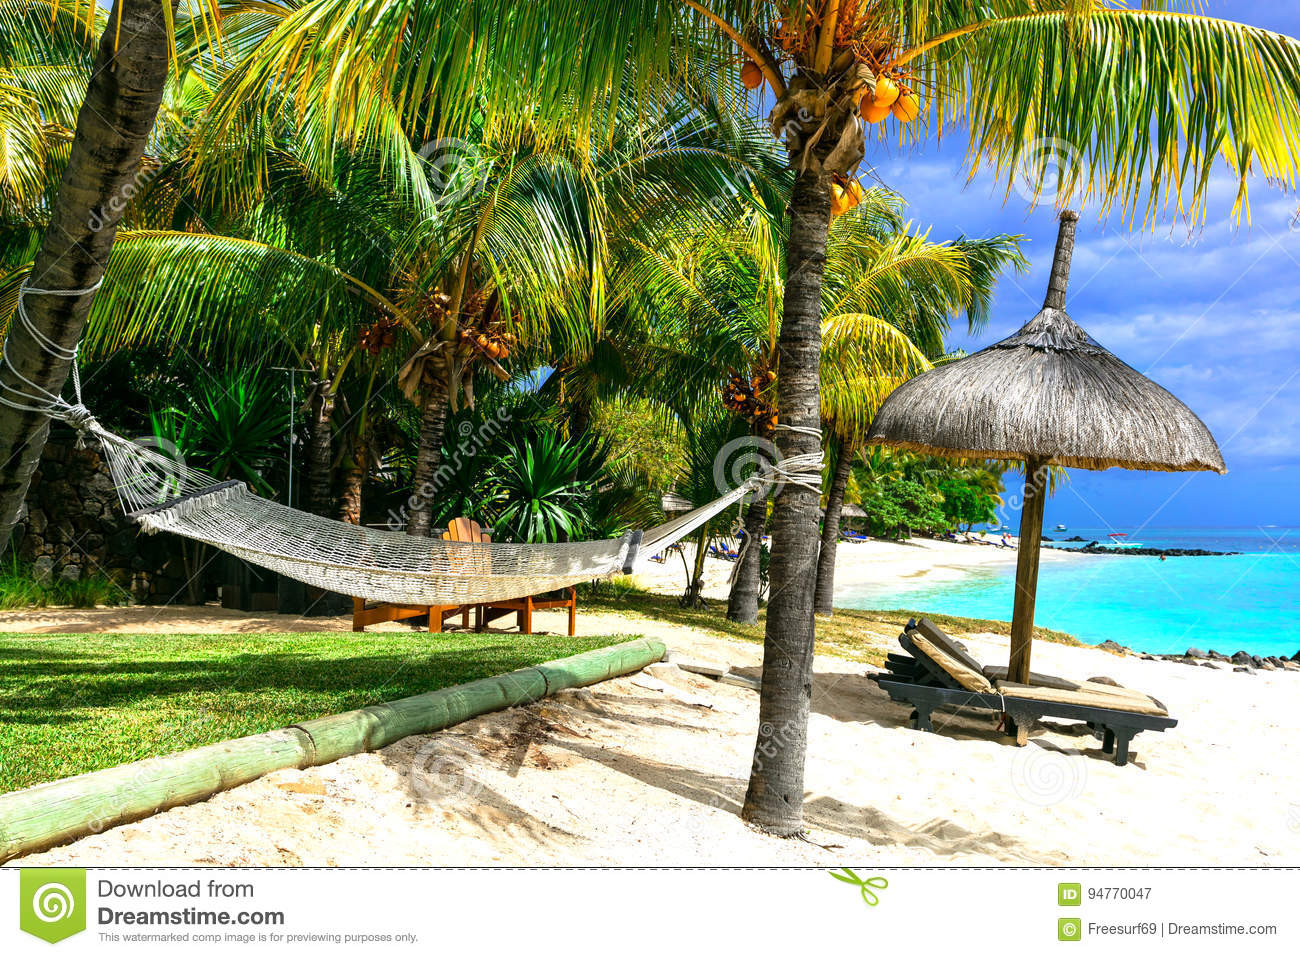 Relaxing Tropical Holidays Scenery With Hammock Under